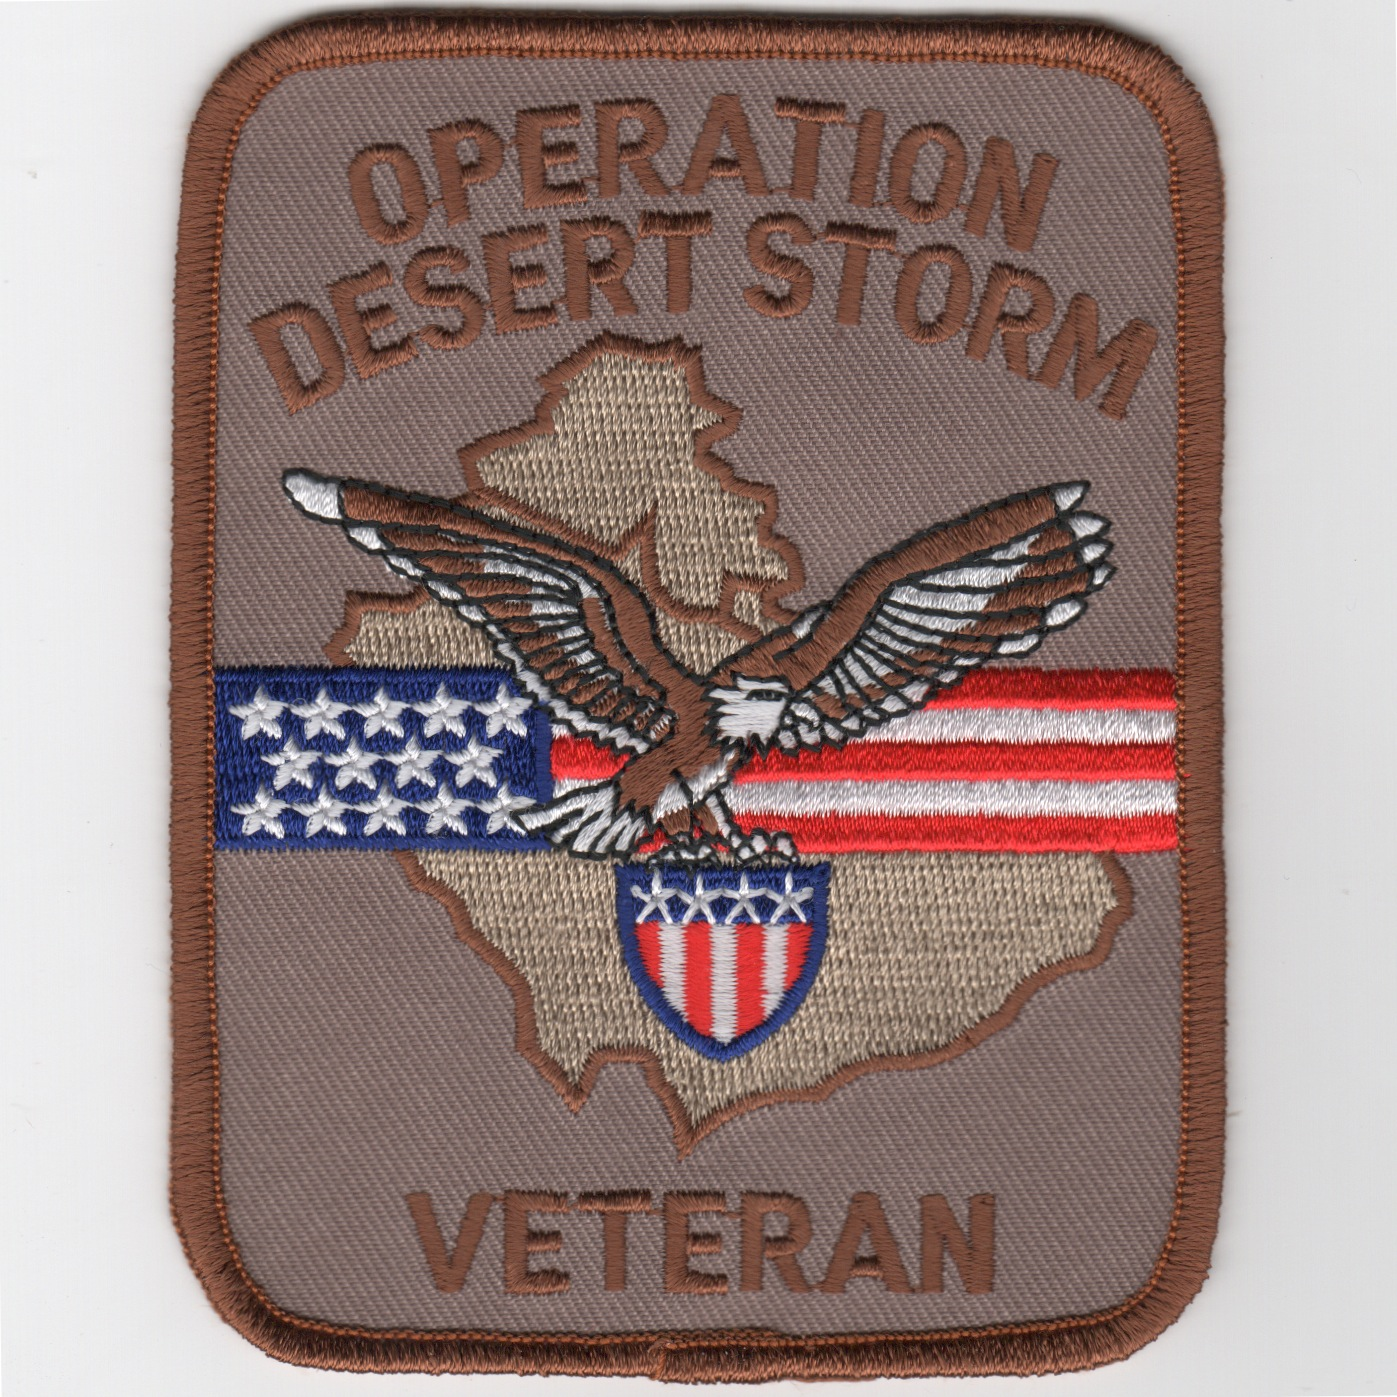 Operation DESERT STORM VETERAN Patch (Rect/Des)